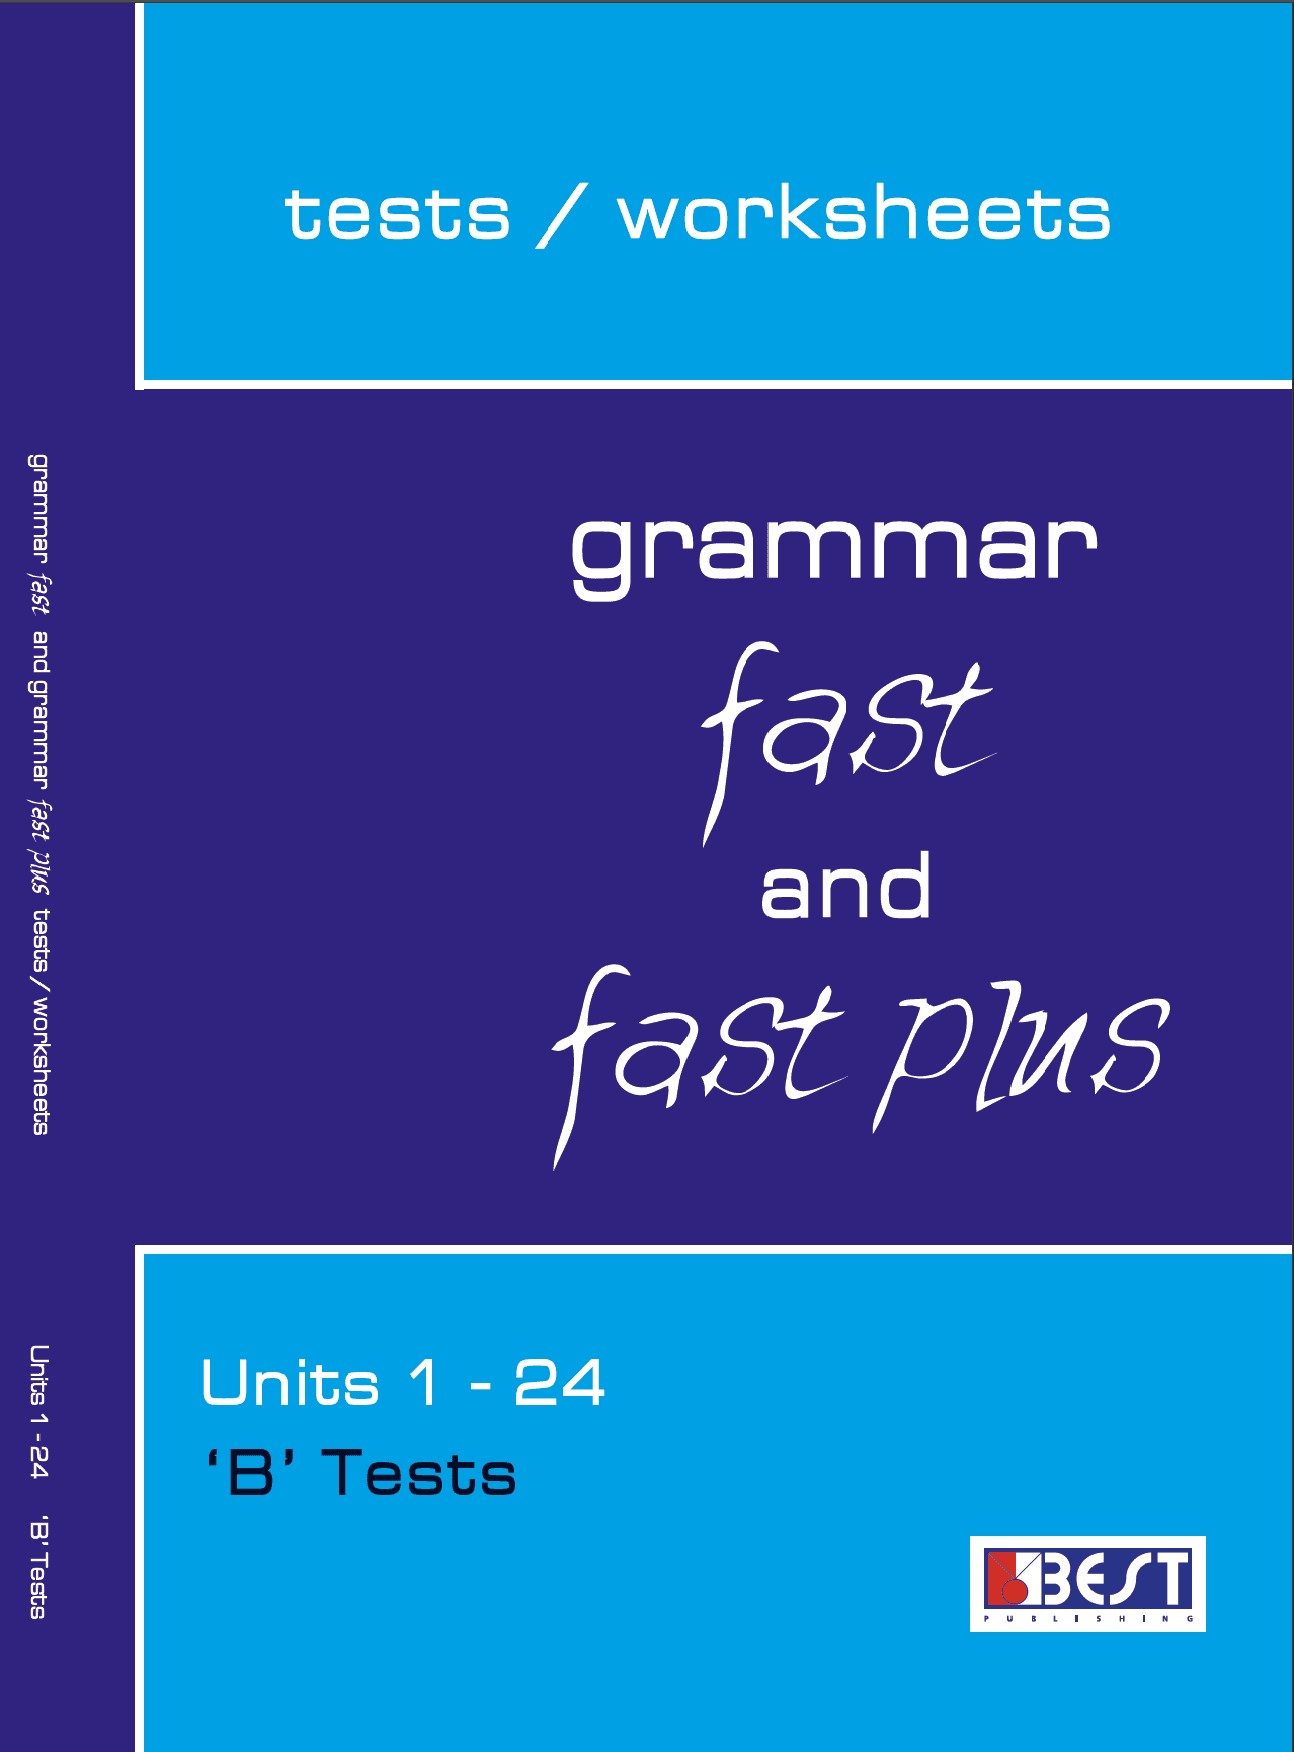 Grammar Fast and Fast Plus B Tests Cover Front Page